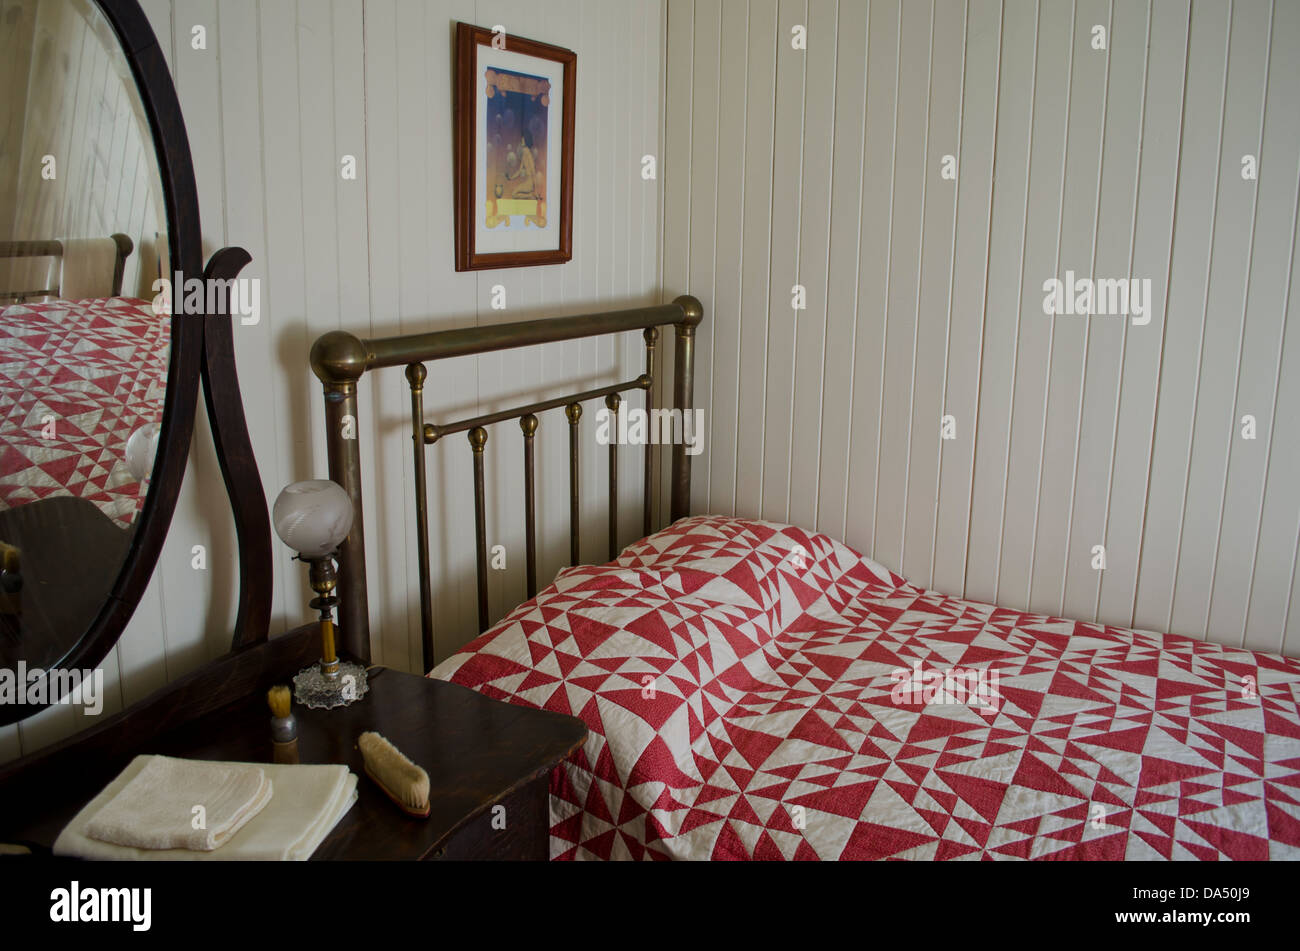 Old Fashioned Bedroom With Antique Bed And Dresser The Bed Has An